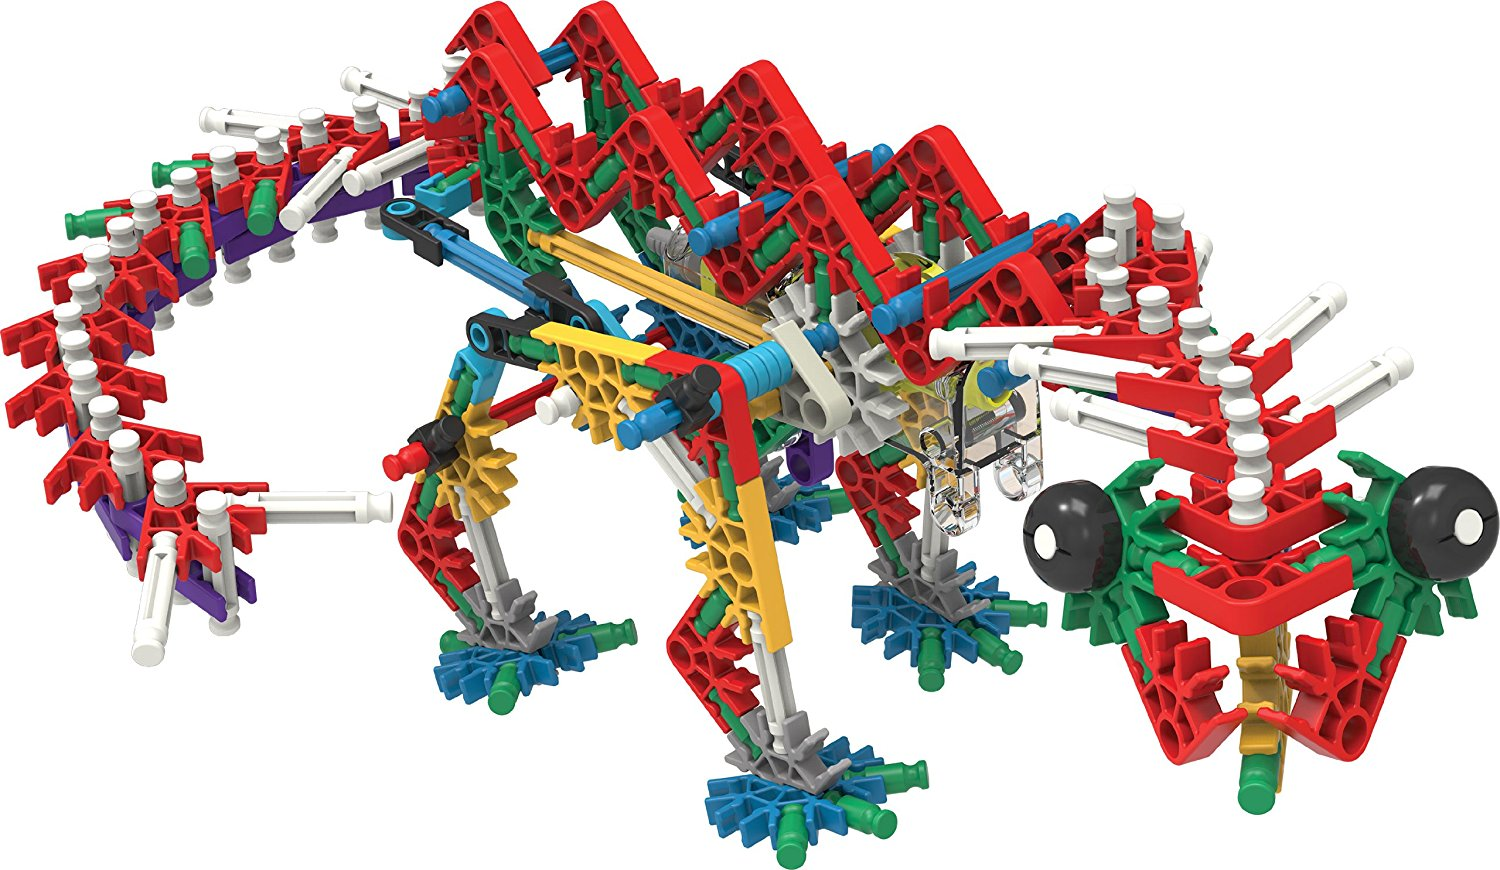 pic of a model made by K'Nex building pieces